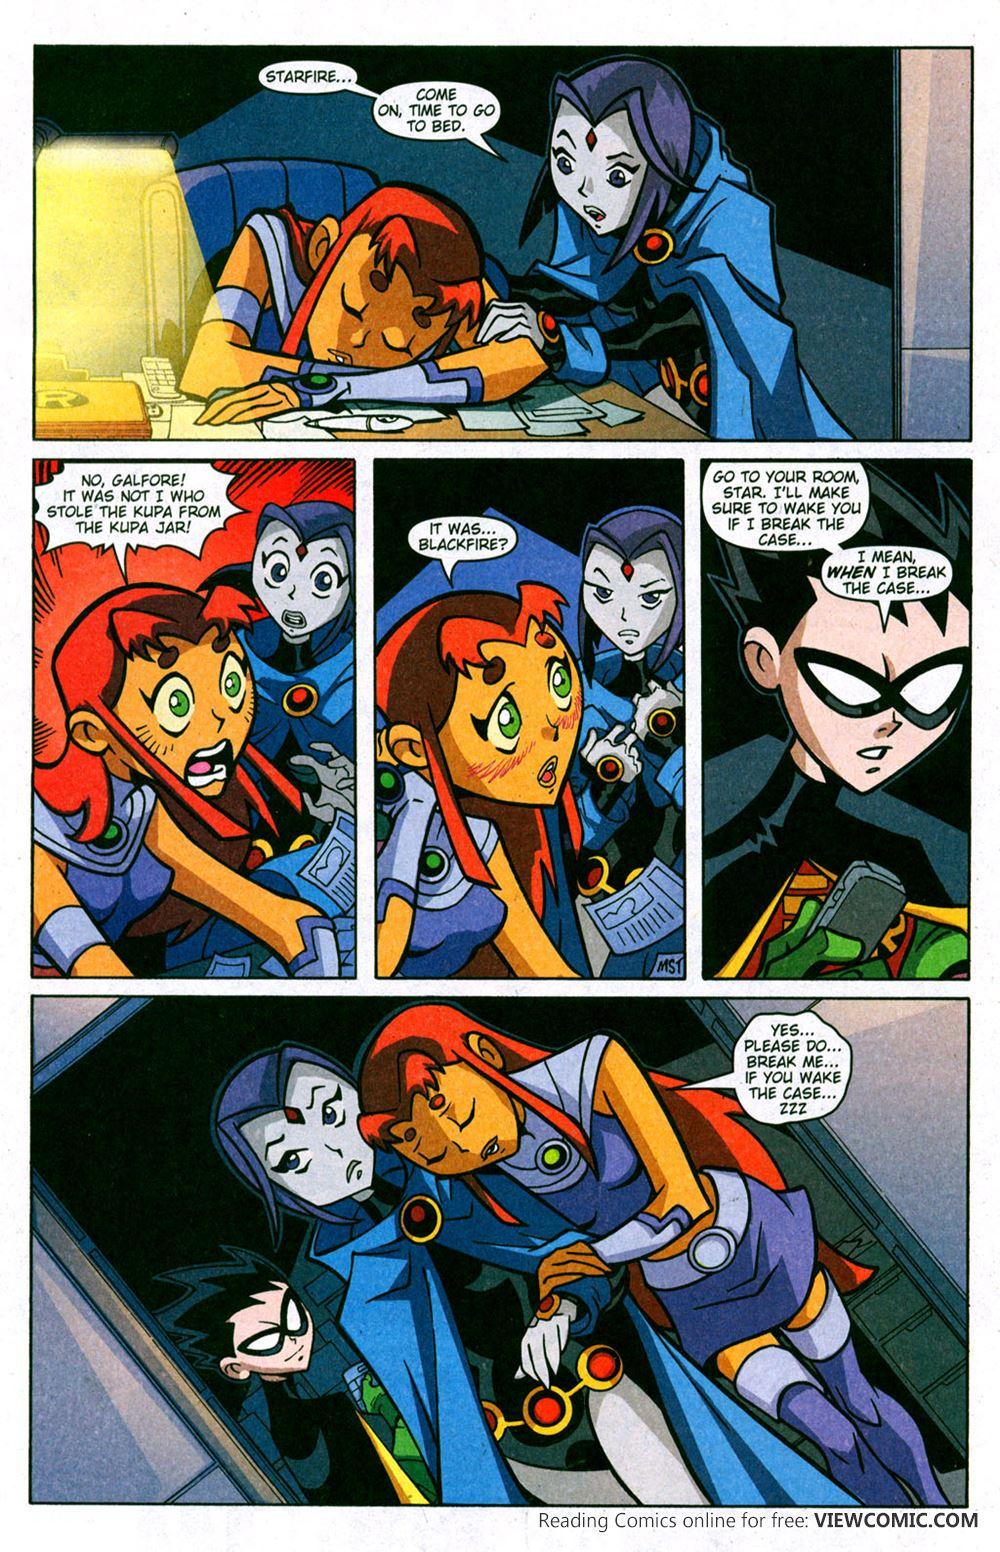 Teen titans go comic online, kendra porn pictures hungary